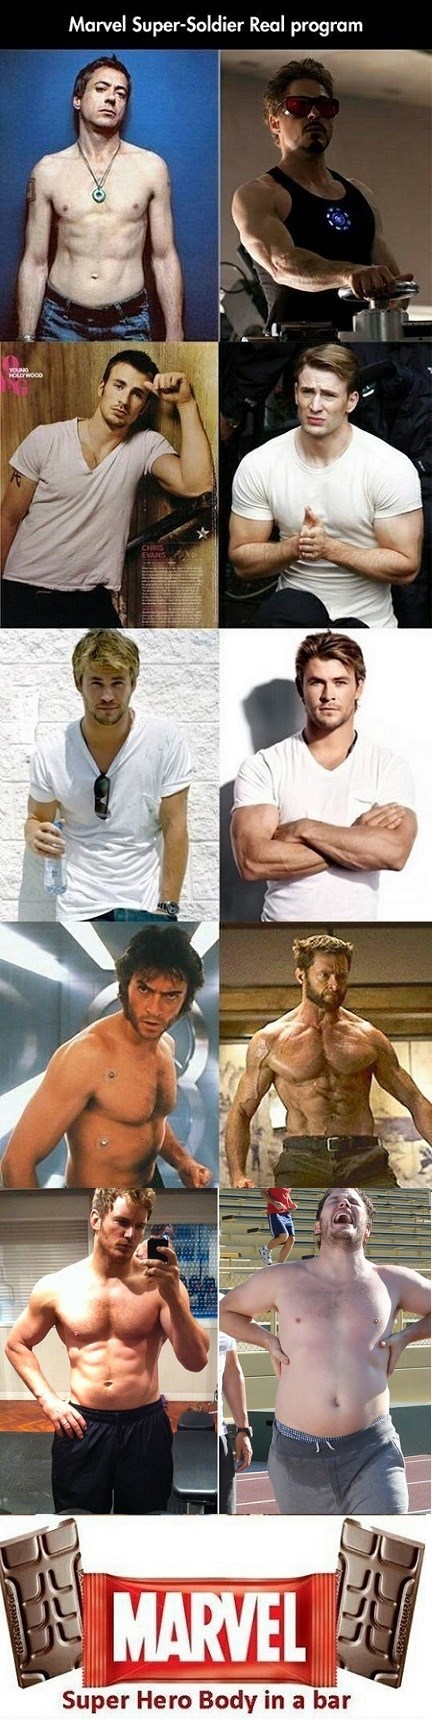 superheroes-marvel-actors-get-in-shape-quick